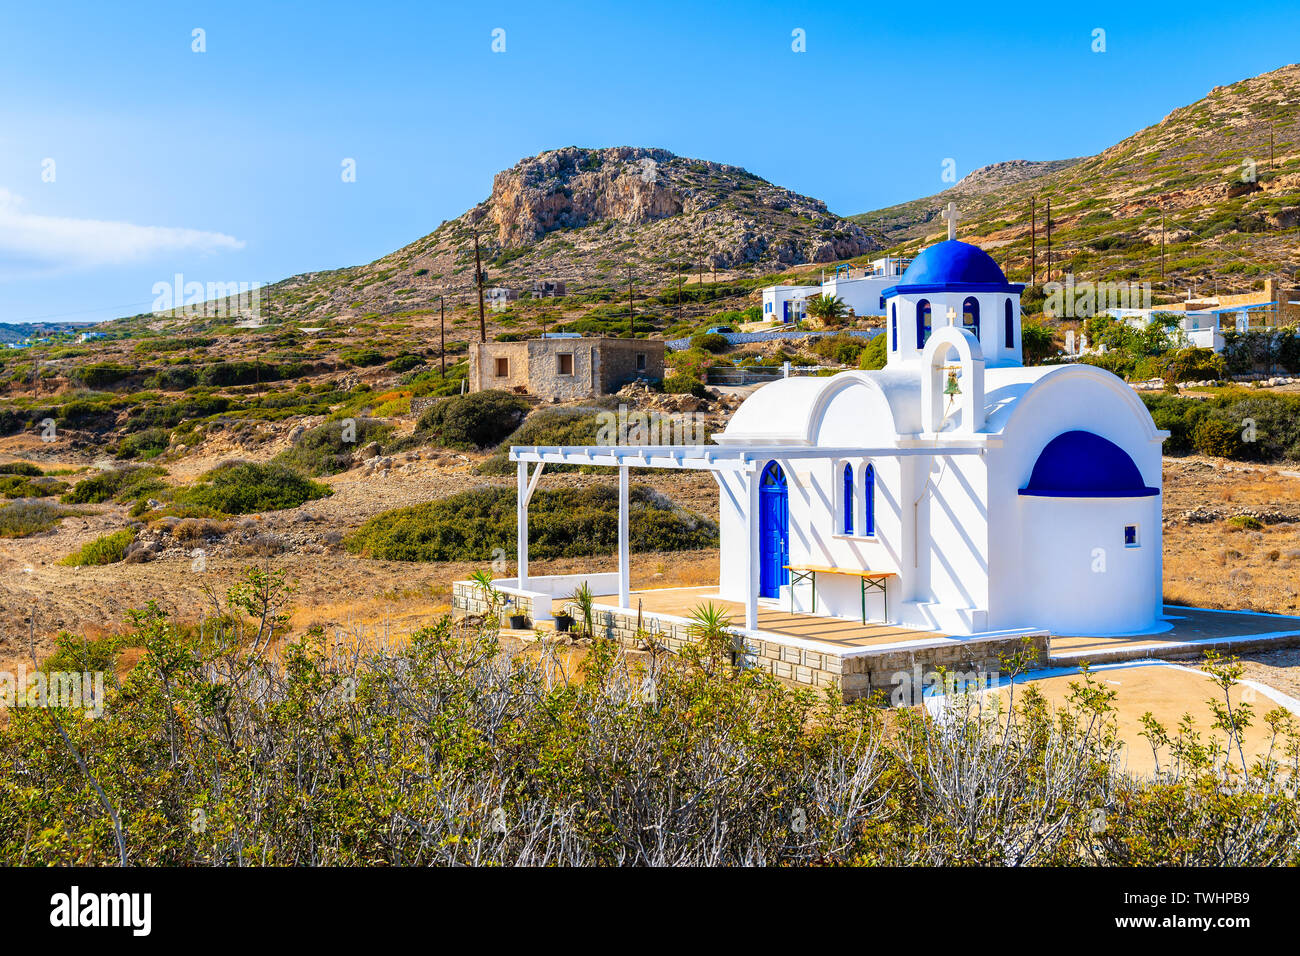 Traditional white church in rural landscape of Karpathos island, Greece Stock Photo